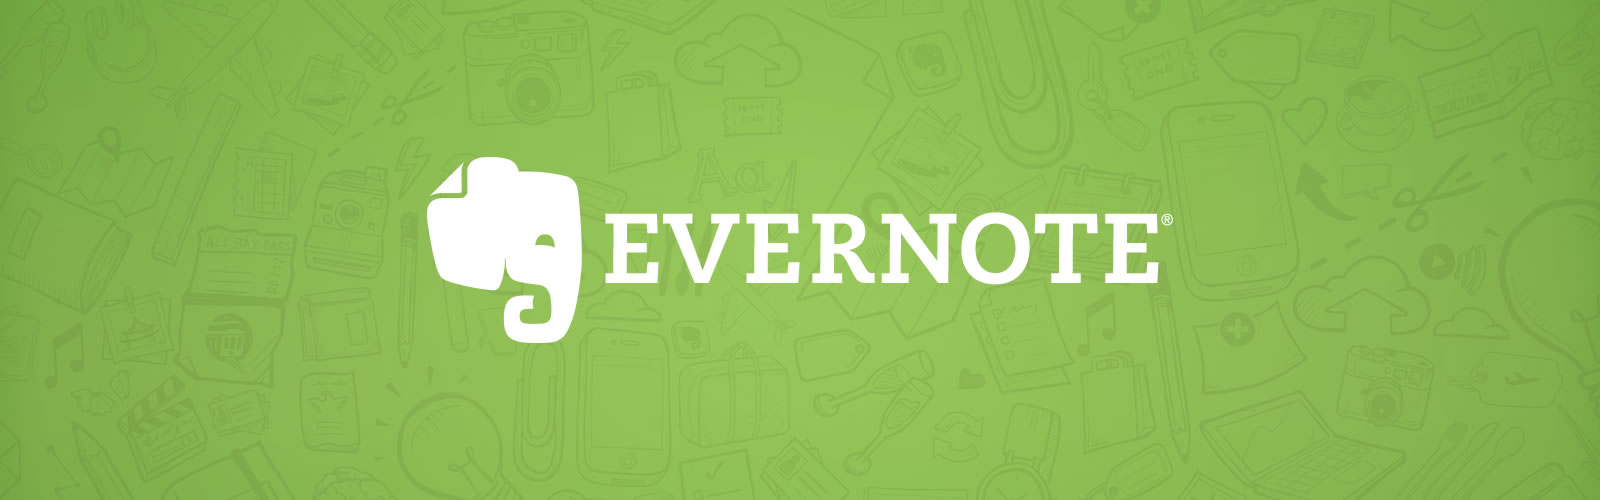 Logotipo do Evernote sobre fundo verde